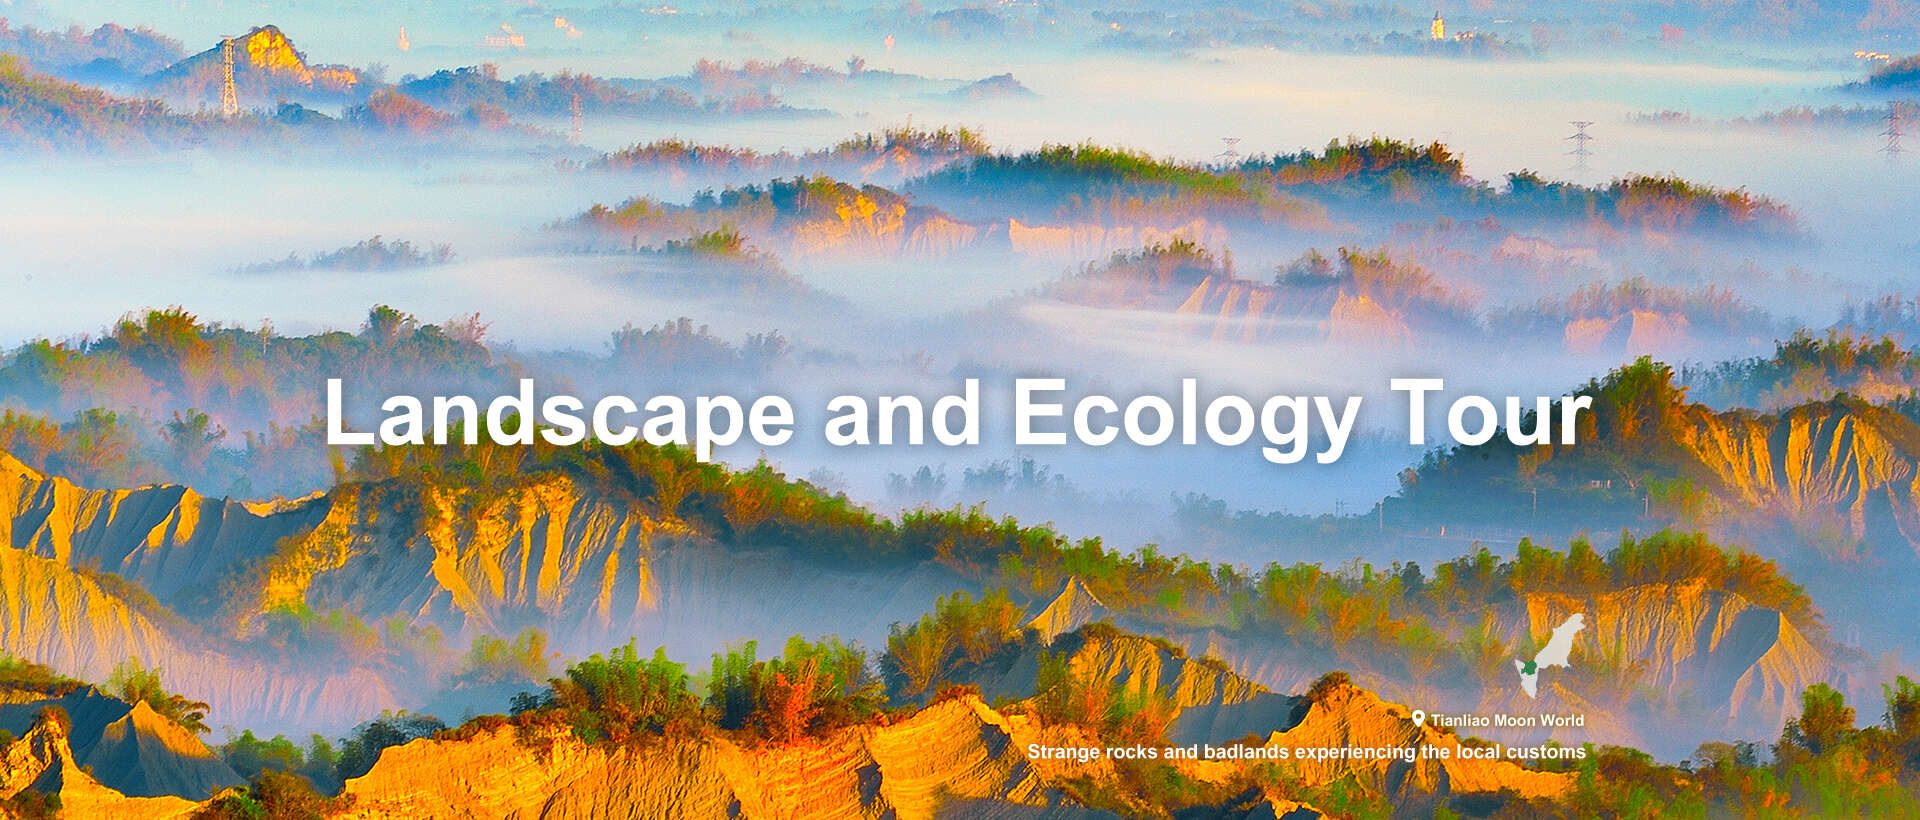 Landscape and Ecology Tour